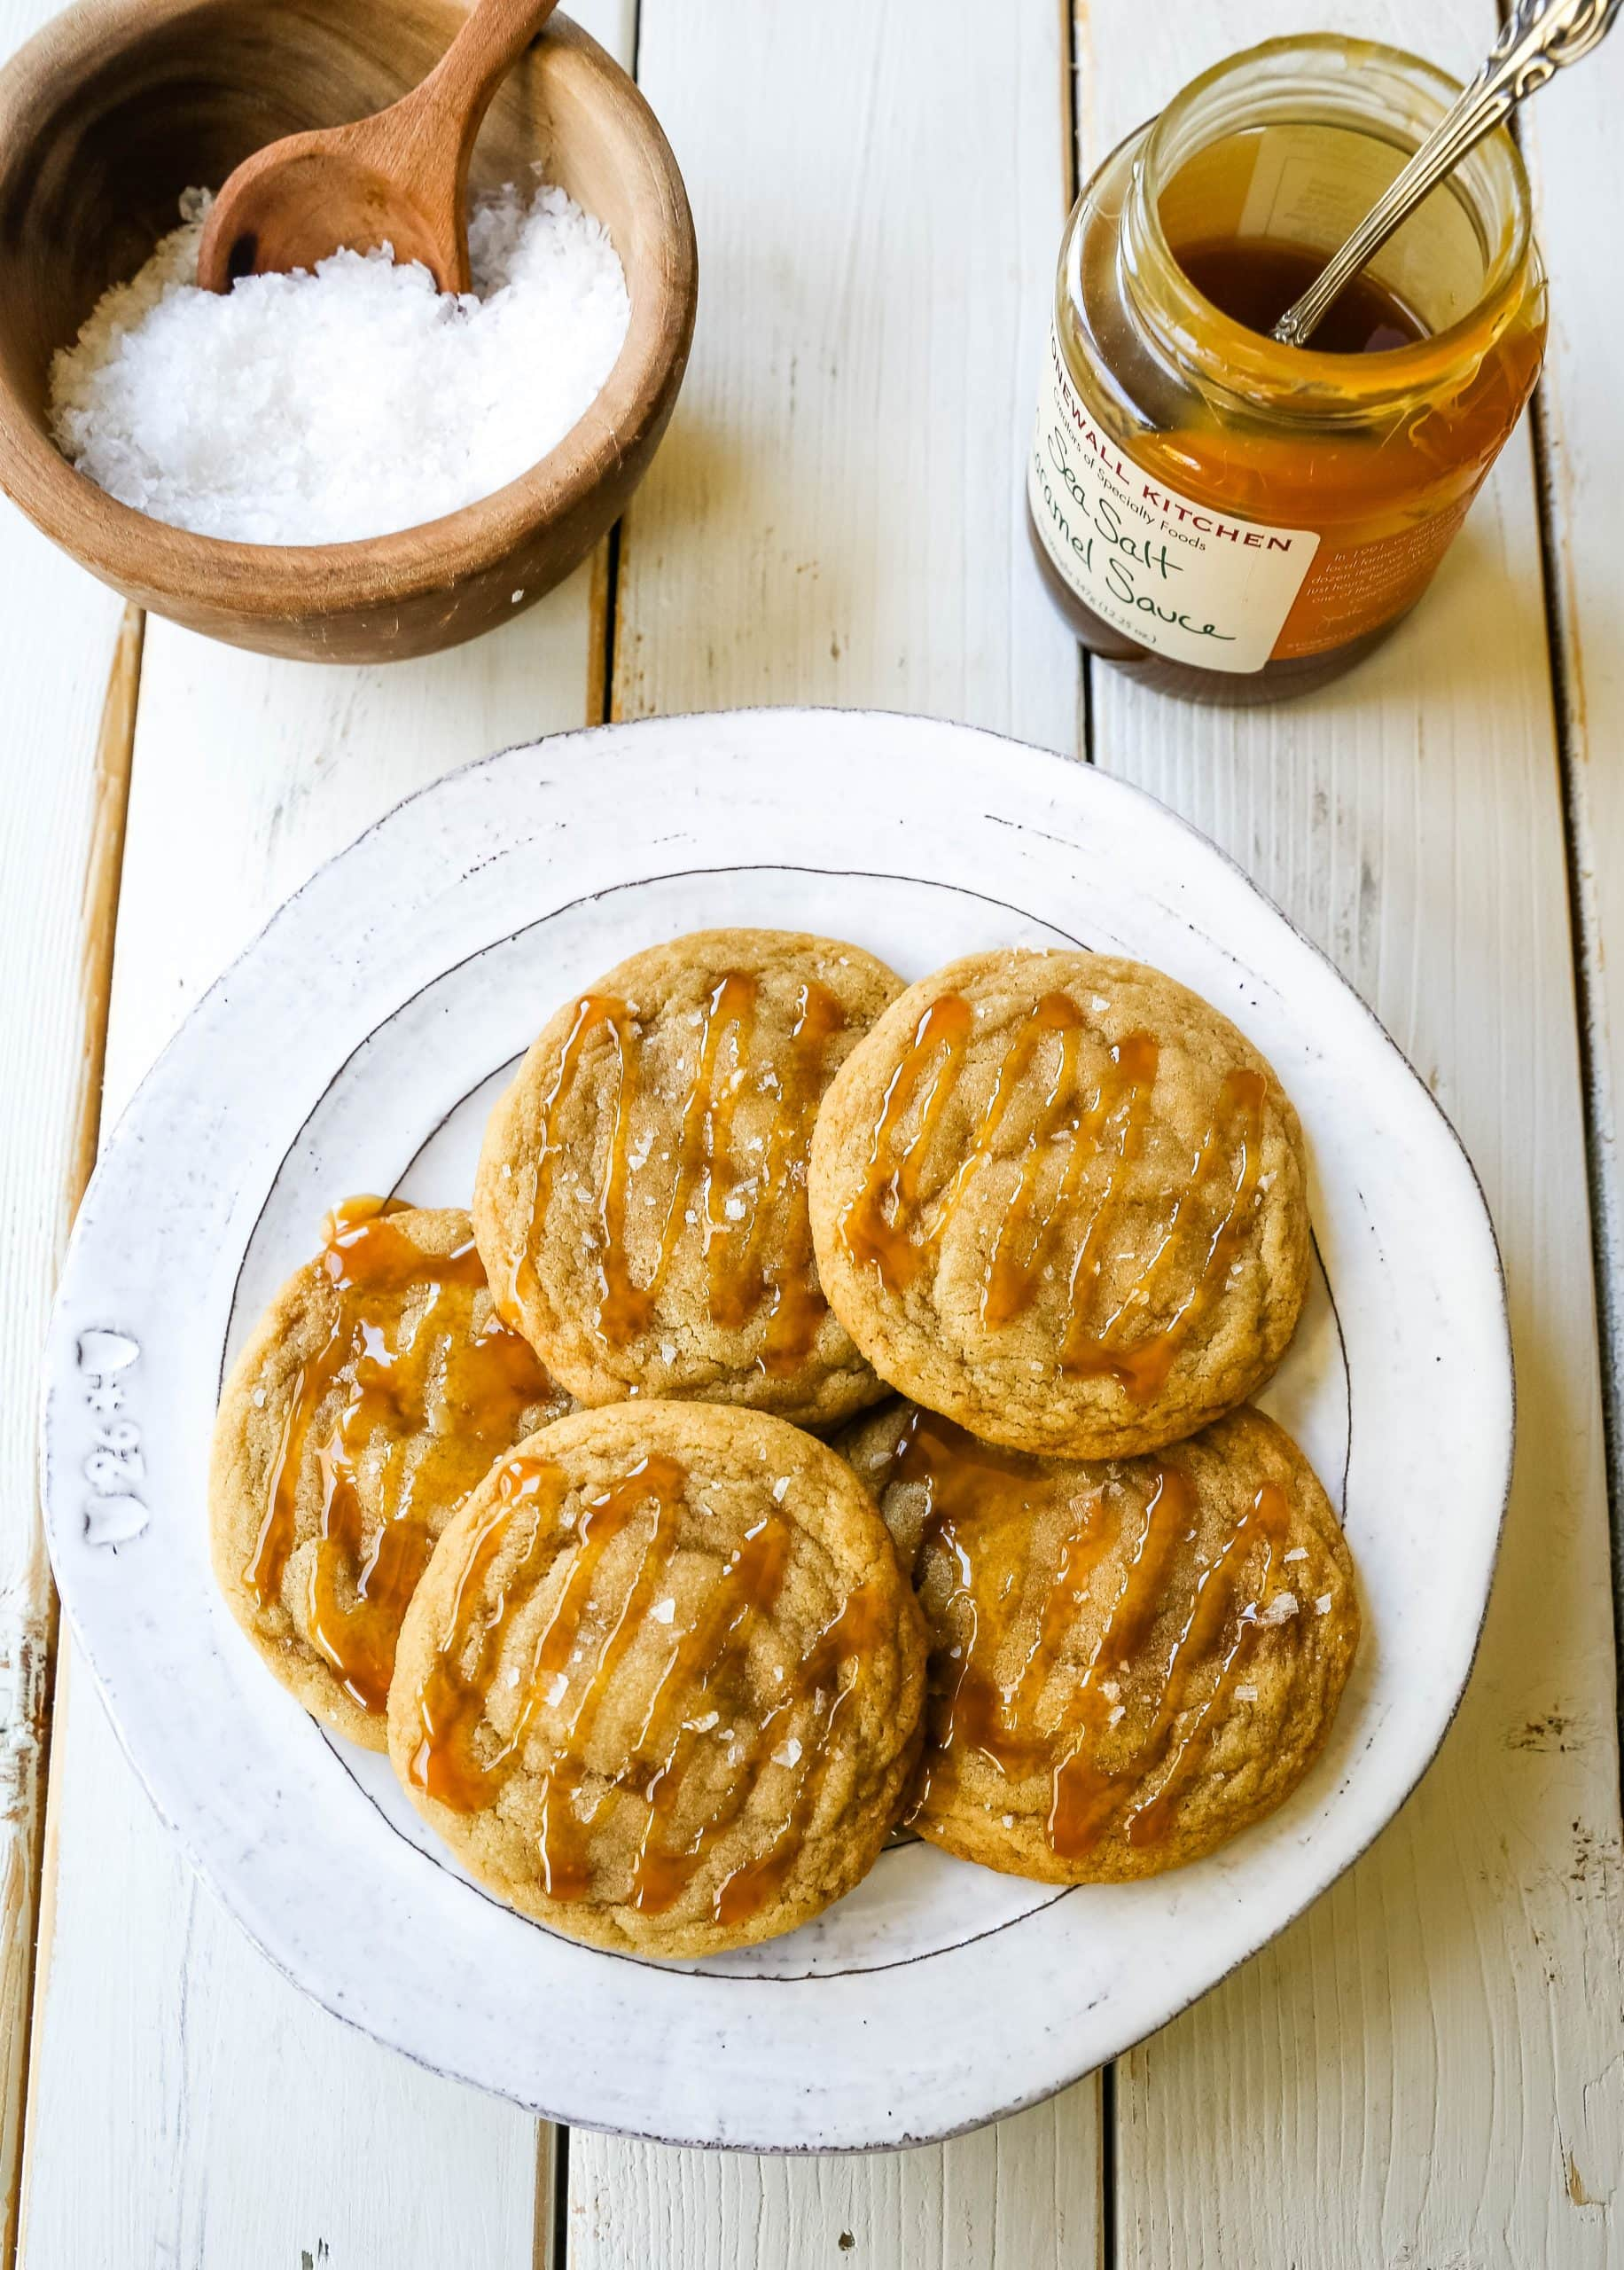 Salted Caramel Cookies Soft chewy caramel cookies with sea salt and drizzled with salted caramel. www.modernhoney.com #cookie #cookies #caramel #caramelcookie #saltedcaramel #seasaltcaramel